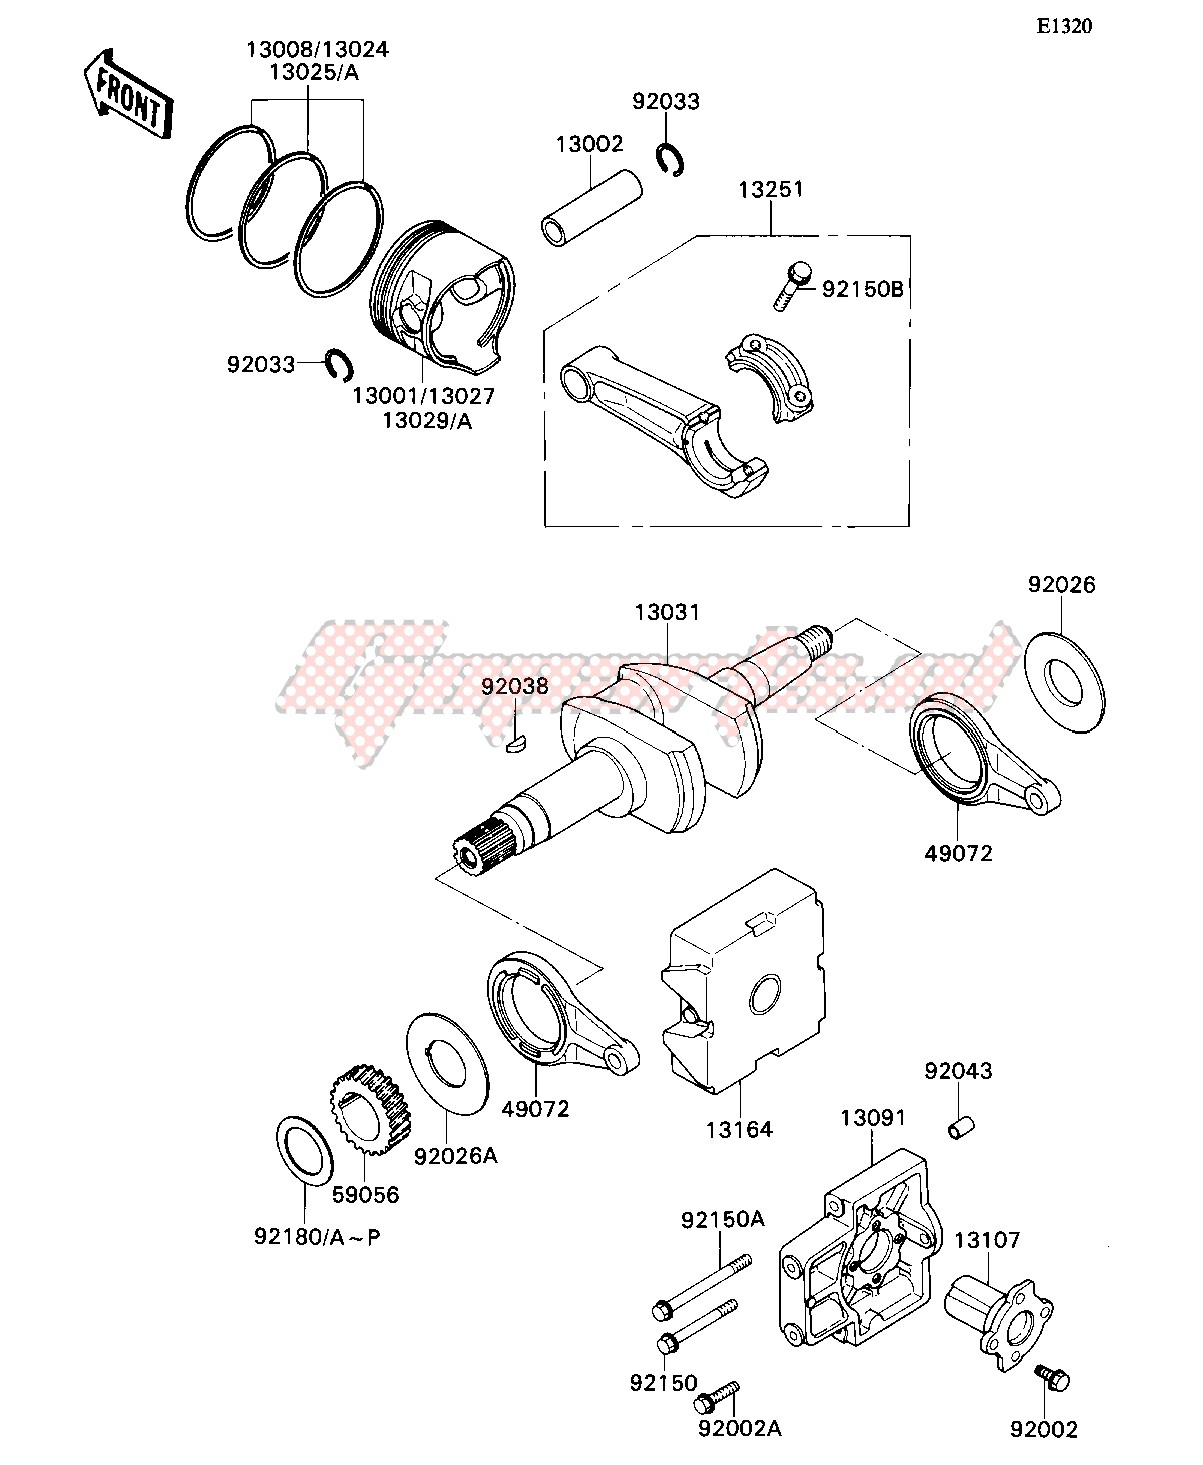 Engine-CRANKSHAFT_PISTON